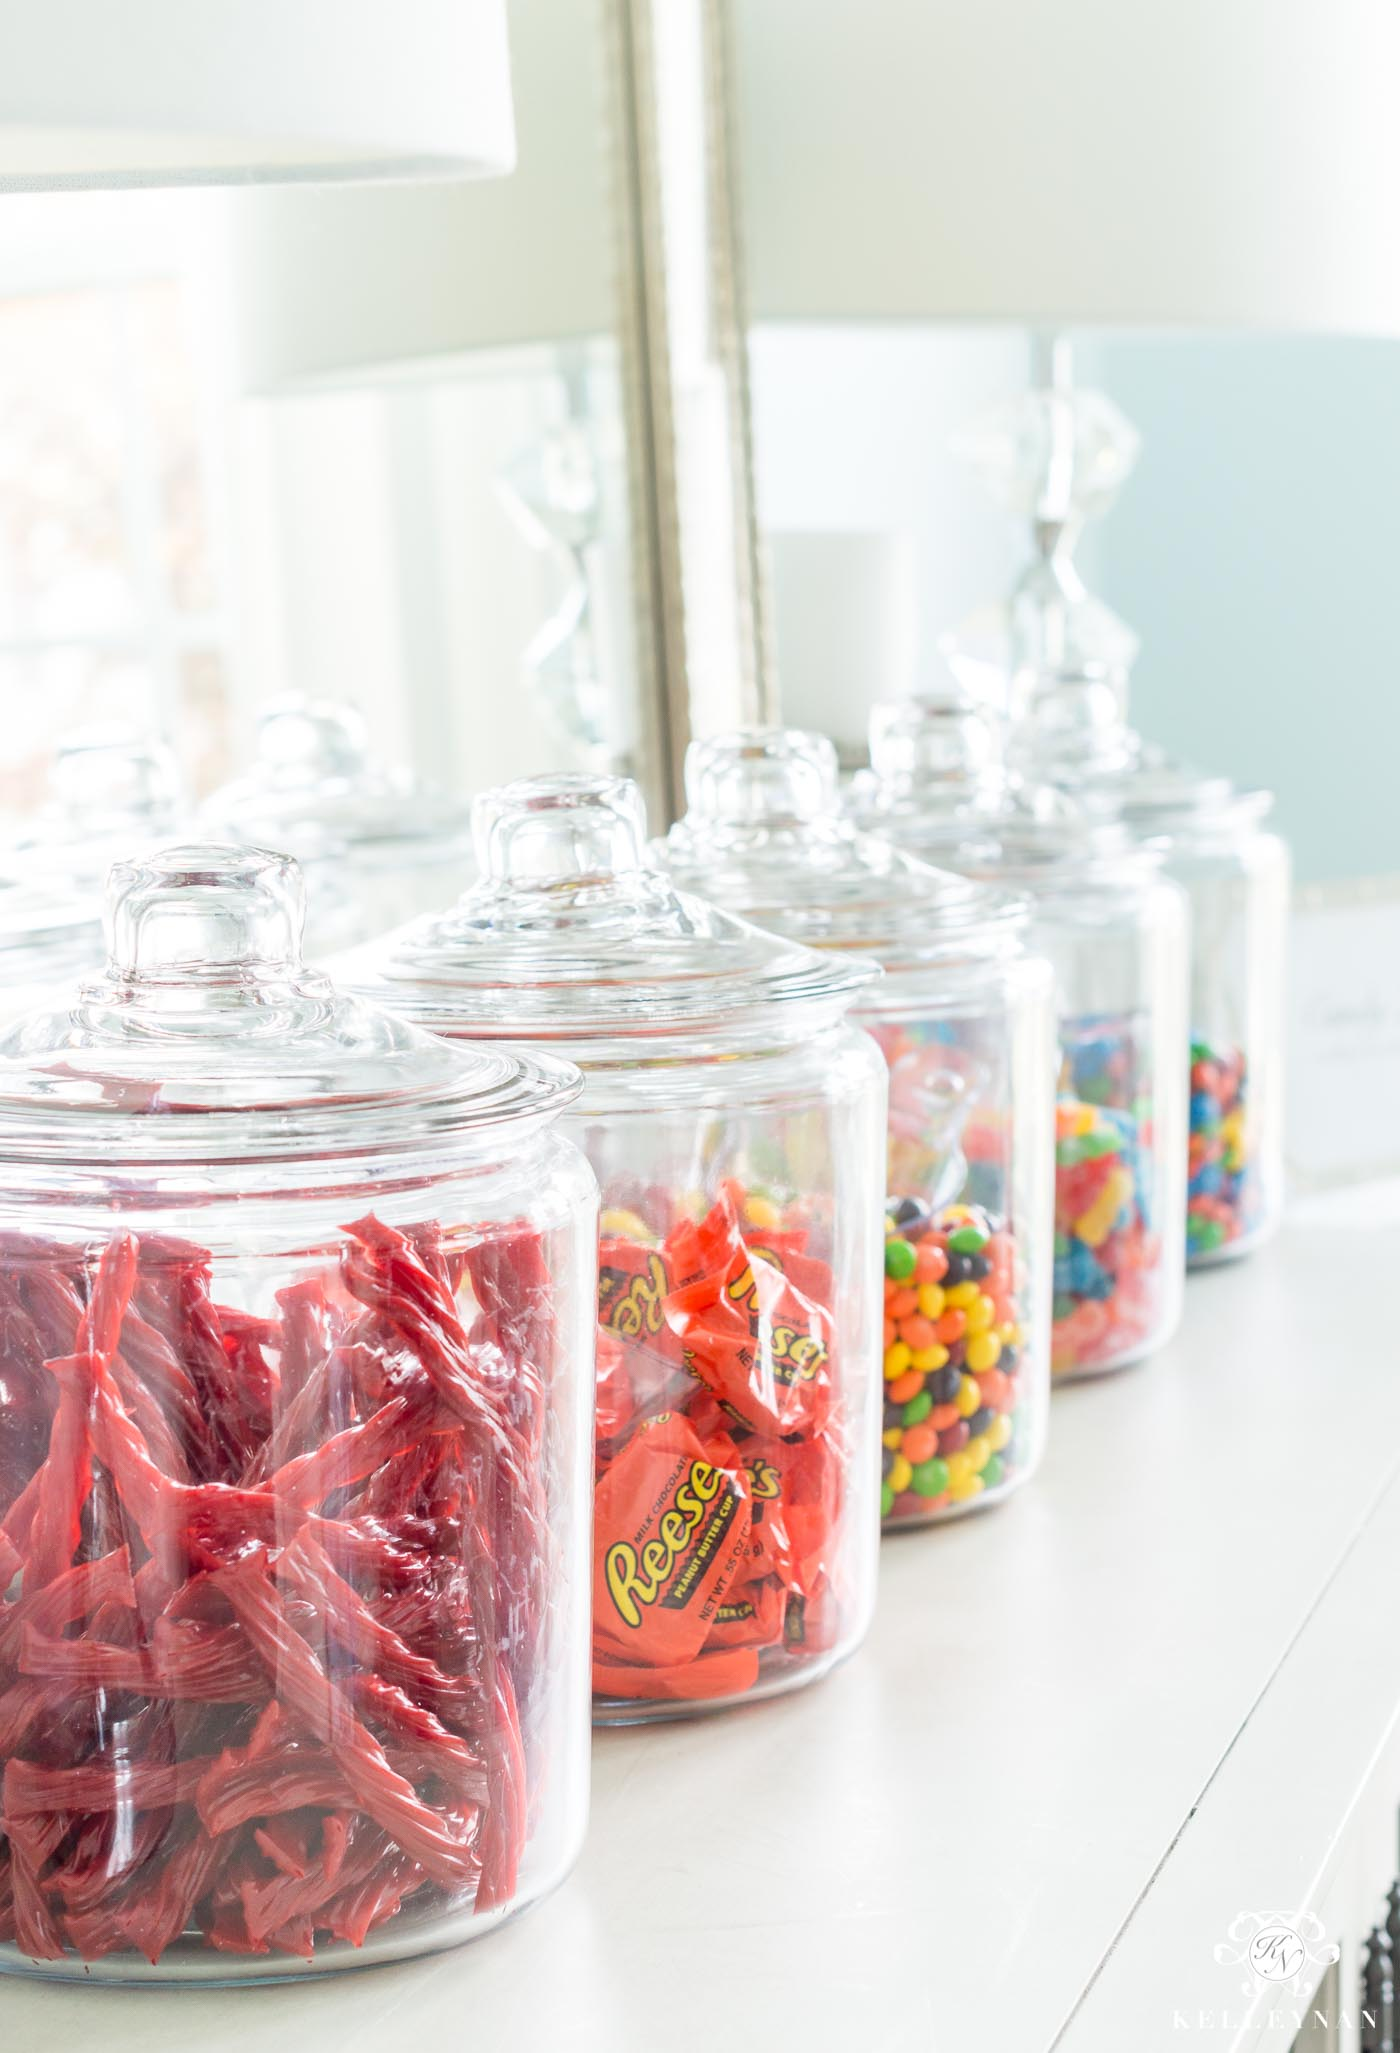 Candy land 1 gallon jars for dessert bar setup